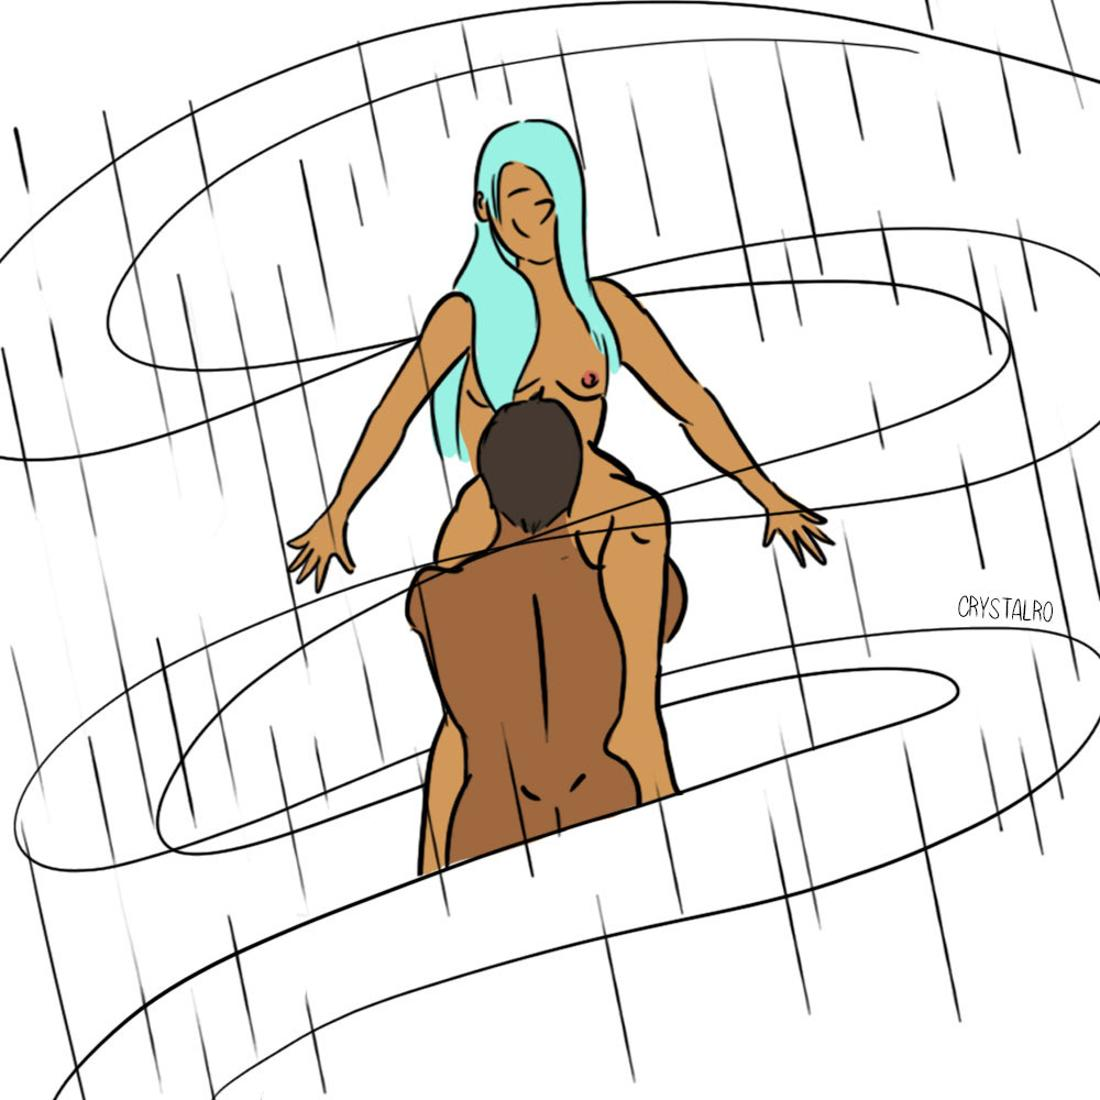 Drawing of a couple having oral sex in a shower that looks like a rain storm